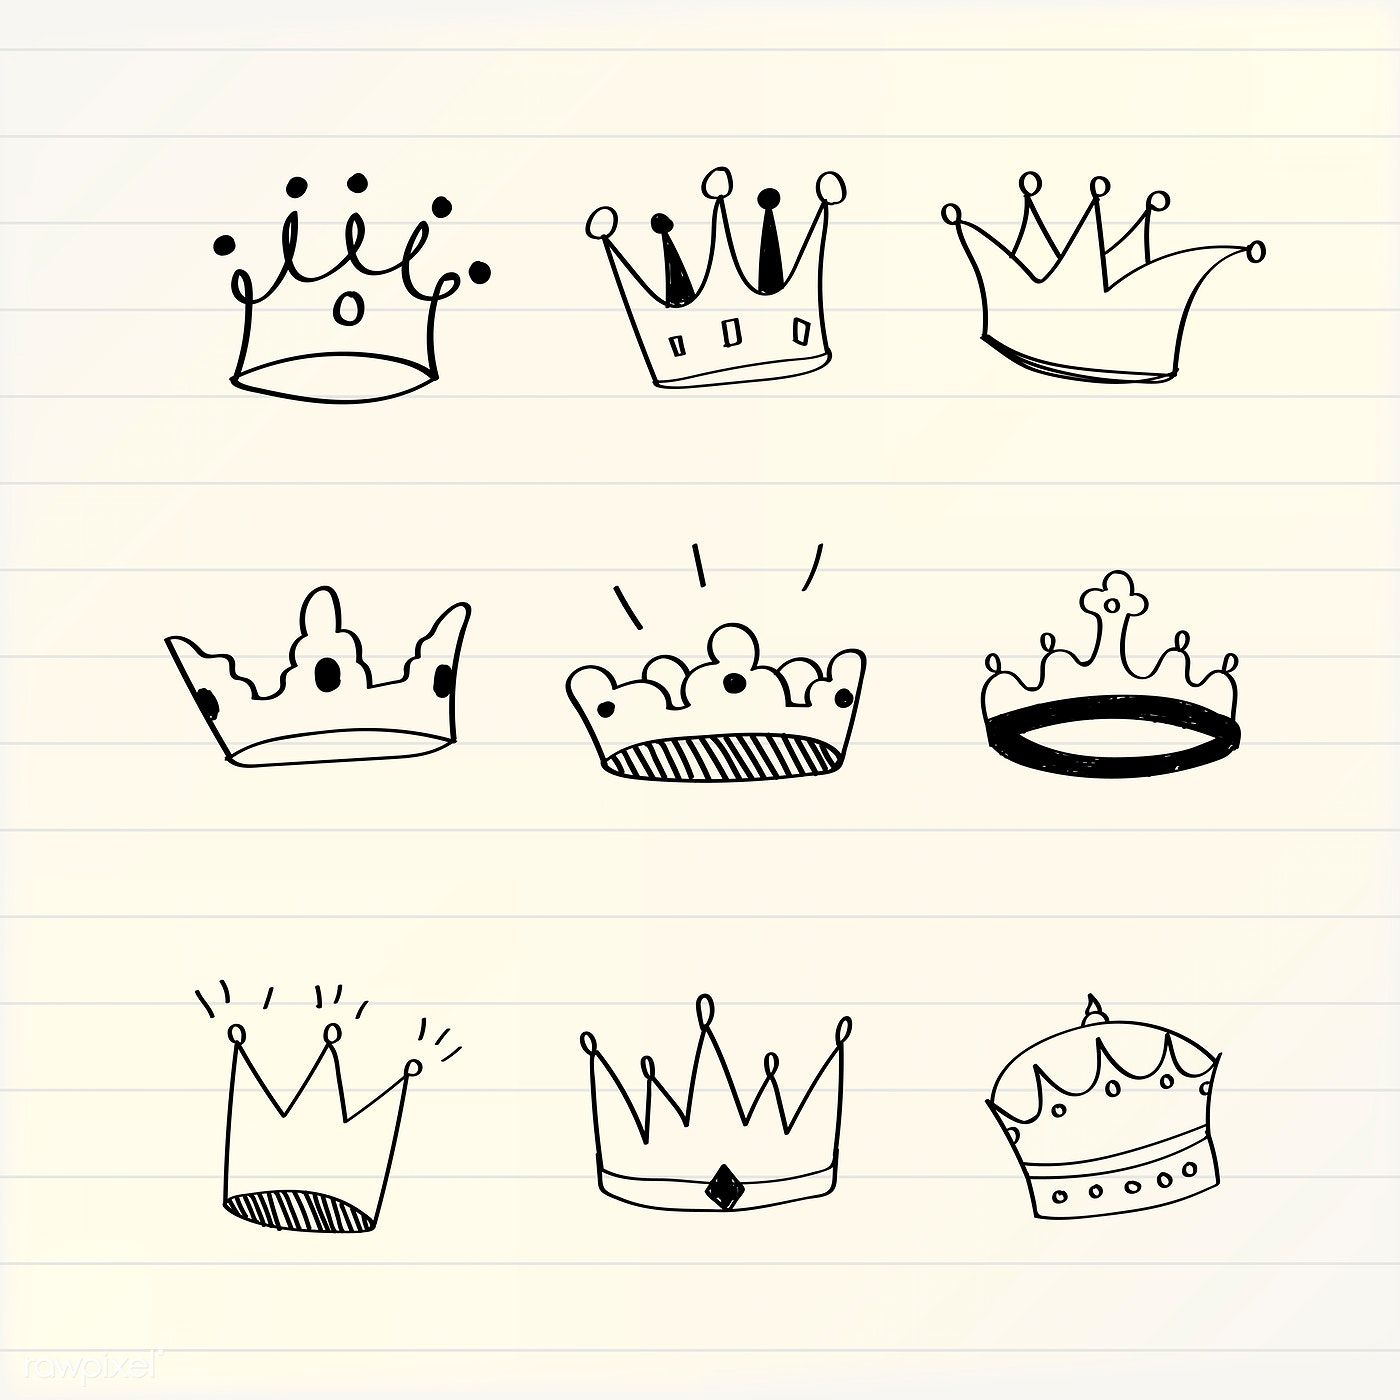 Various Crowns Doodle Illustration Vector Free Image By Rawpixel Com Filmful Doodle Illustration Cute Doodle Art Cheetah Print Tattoos